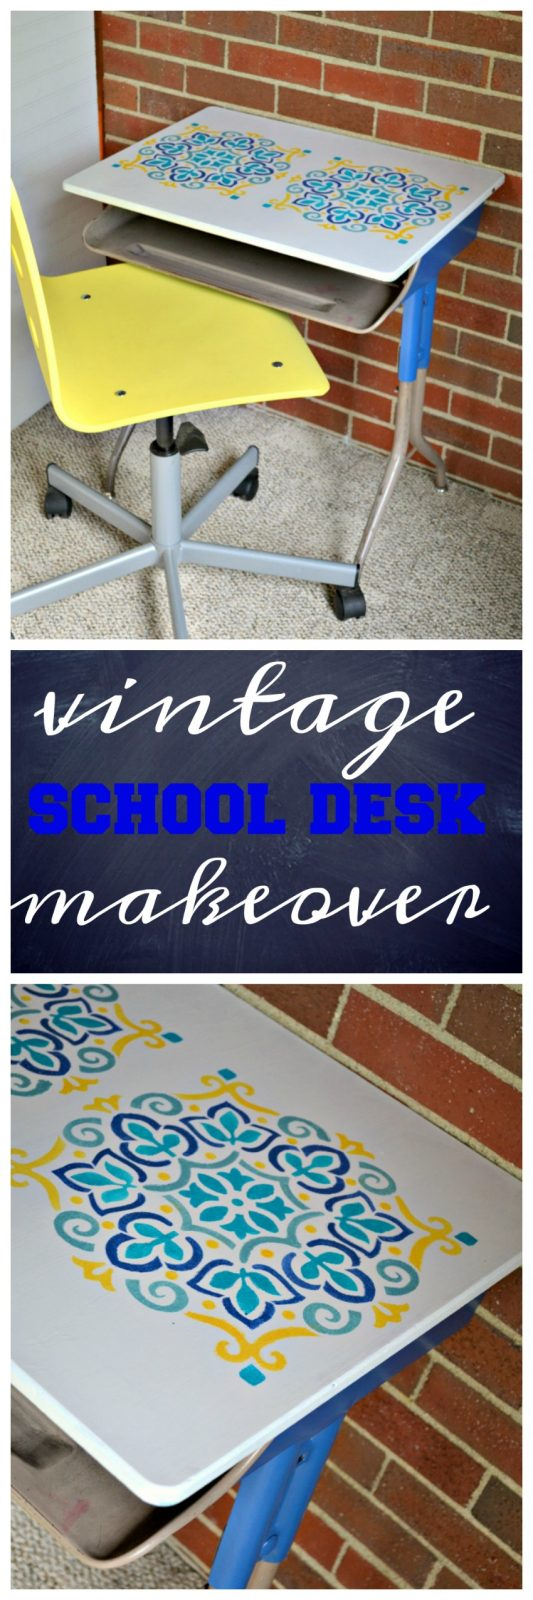 Vintage School Desk Makeover from The Cards We Drew